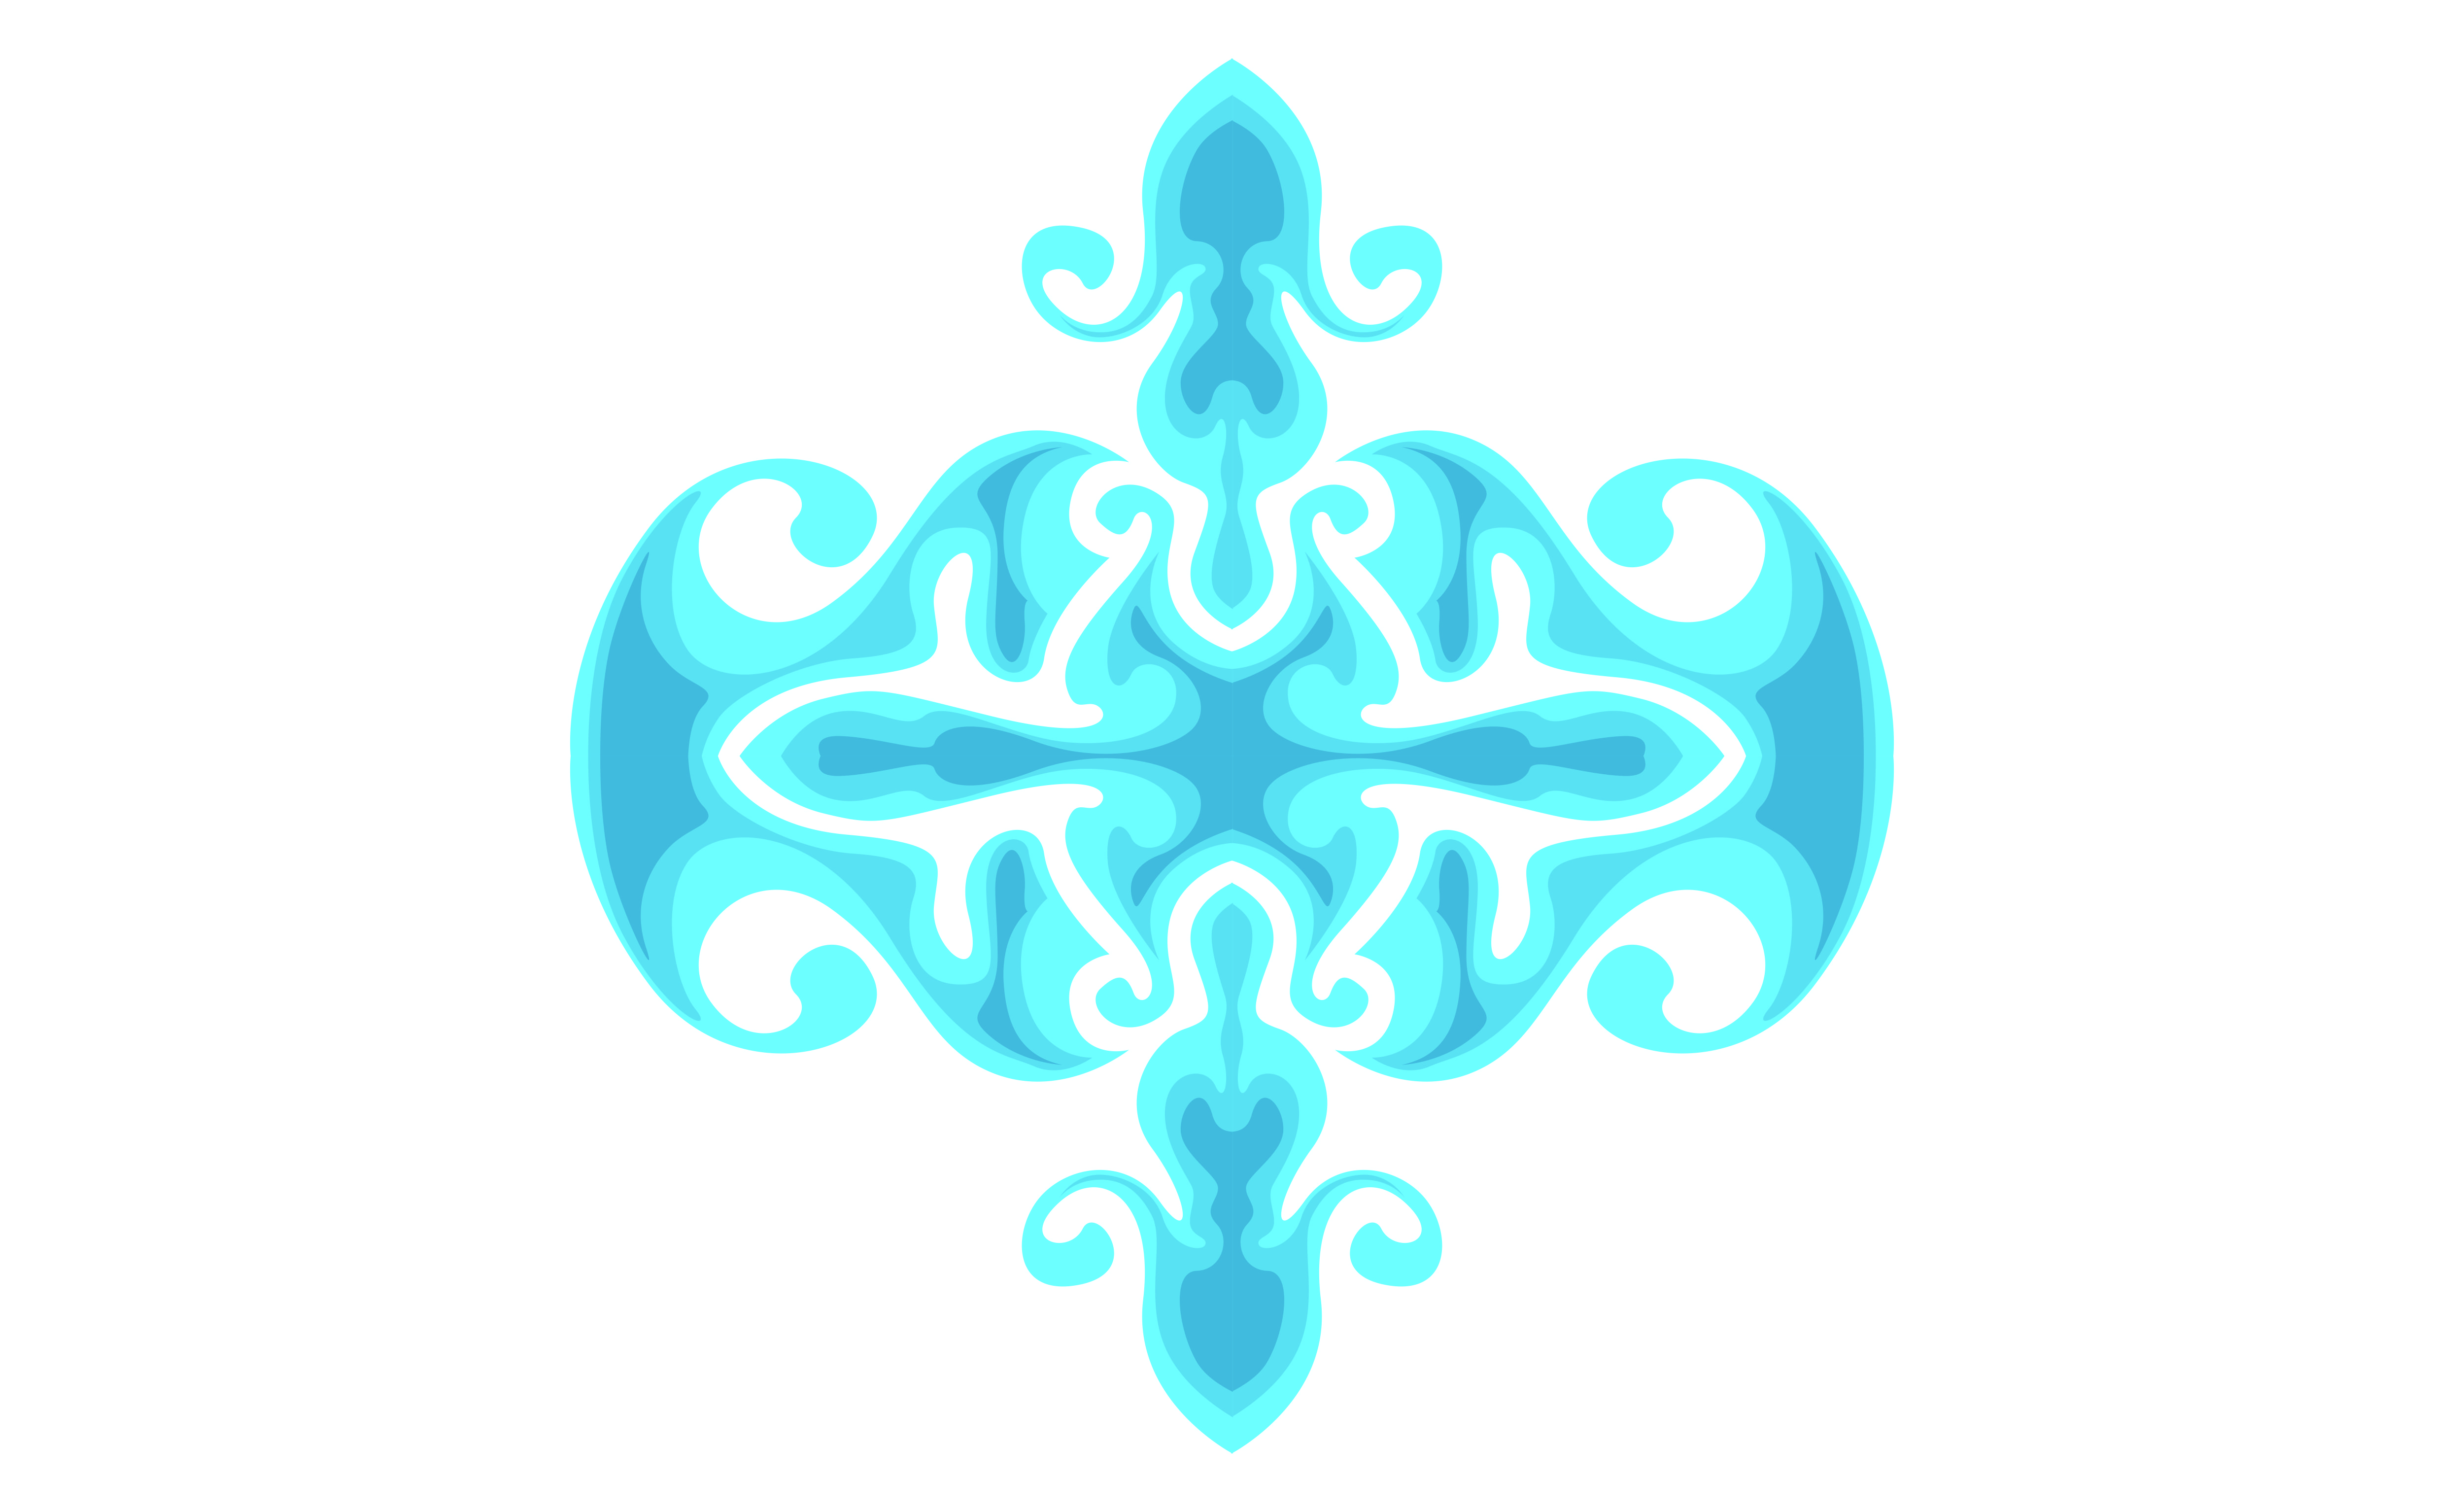 Download Free Blue Ornament Border Design Graphic By Arief Sapta Adjie for Cricut Explore, Silhouette and other cutting machines.